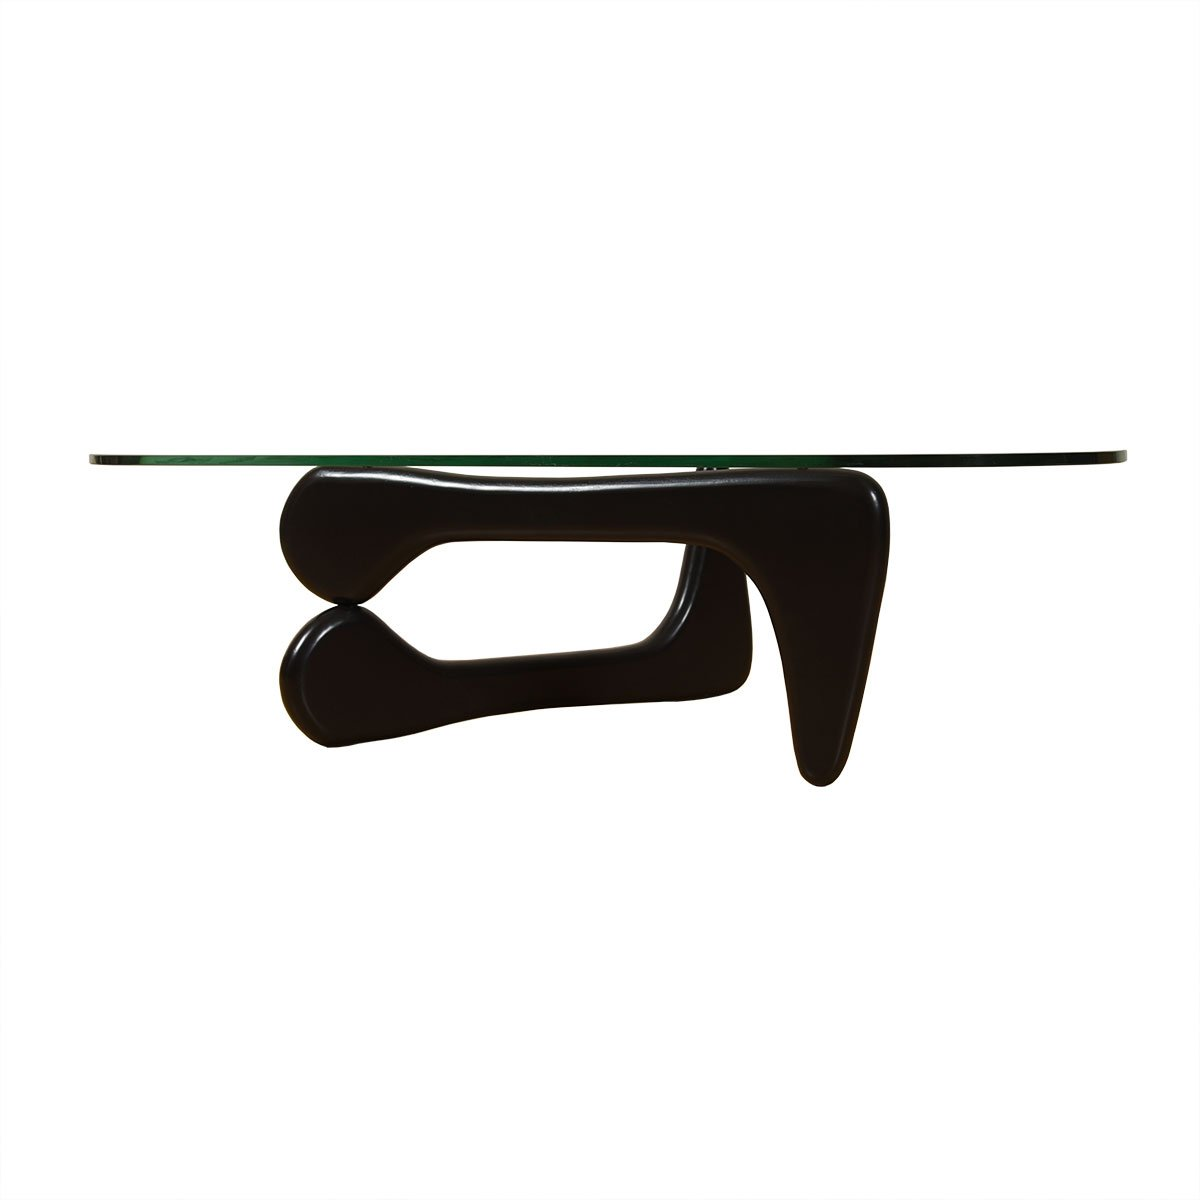 Noguchi Coffee Table with Glass Top